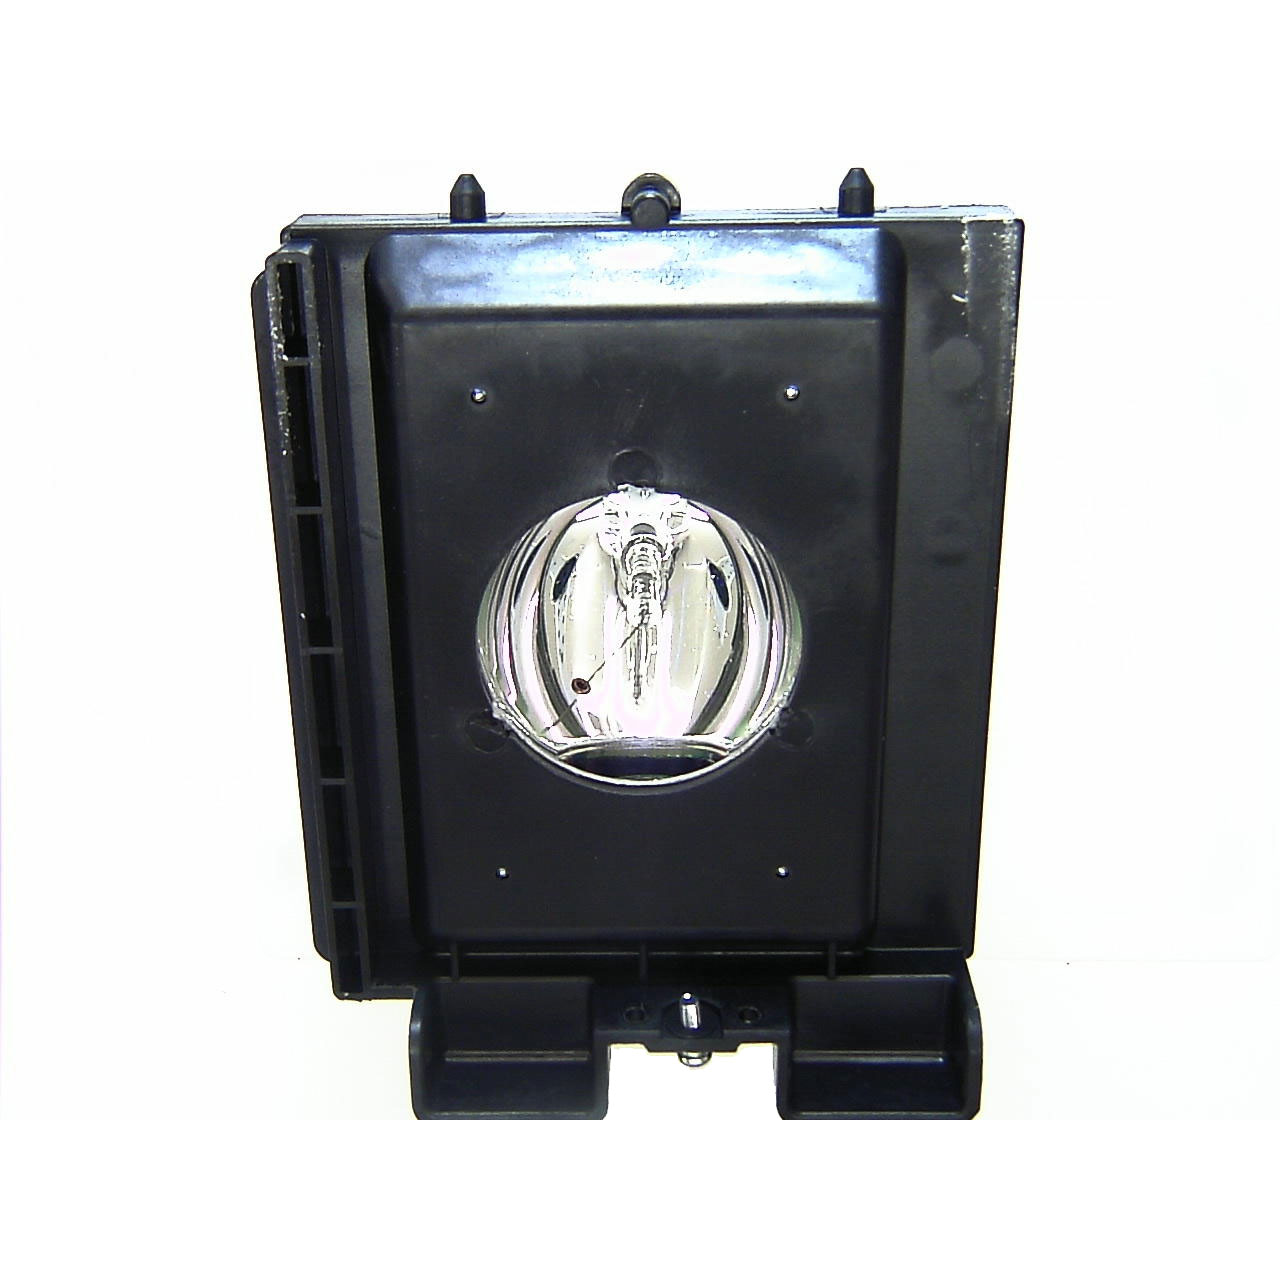 VIVID Lamps Original Inside lamp for the HL-R5688W (Type 3) projector. Replaces: BP96-00677A Identical performan